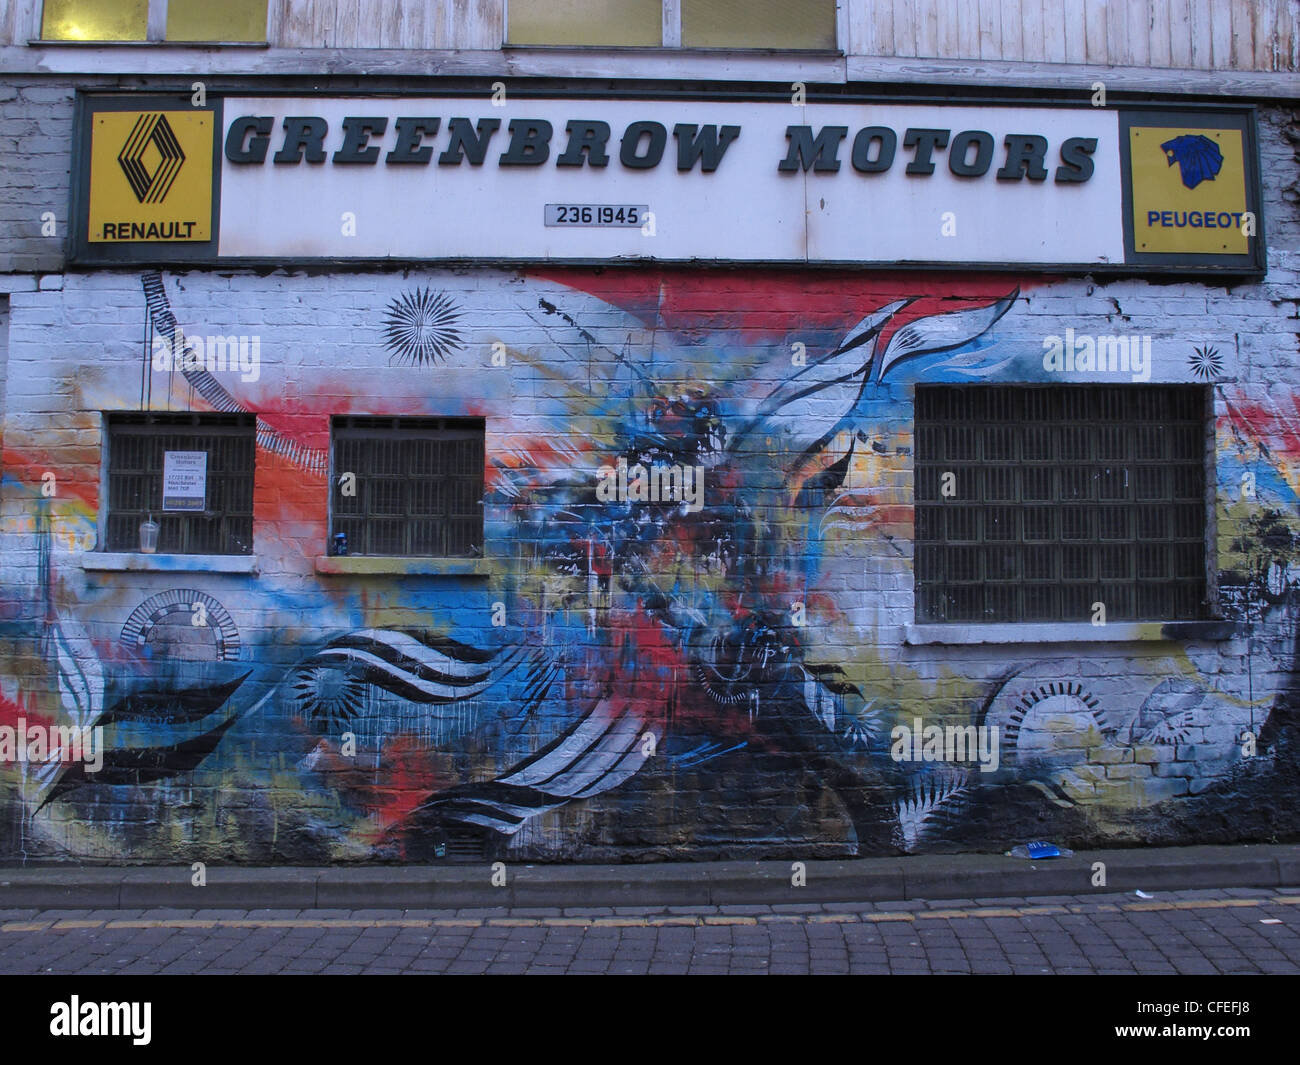 Inner city Manchester graffiti at Greenbow Motors 51 New Wakefield St - Stock Image